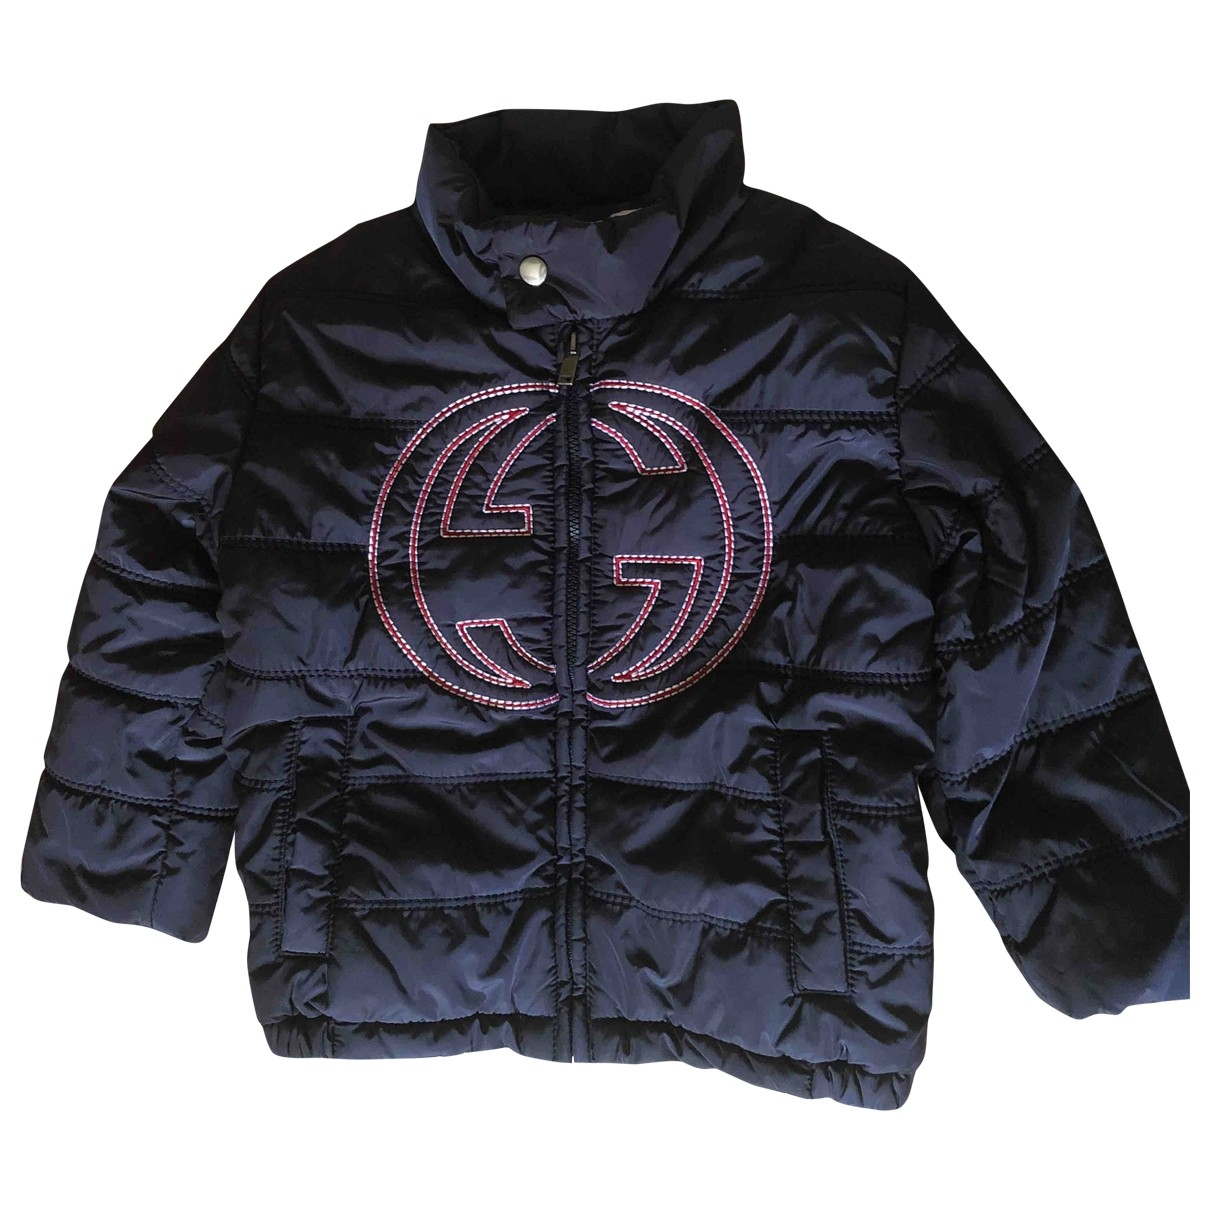 Gucci \N Navy jacket & coat for Kids 18 months - up to 81cm FR